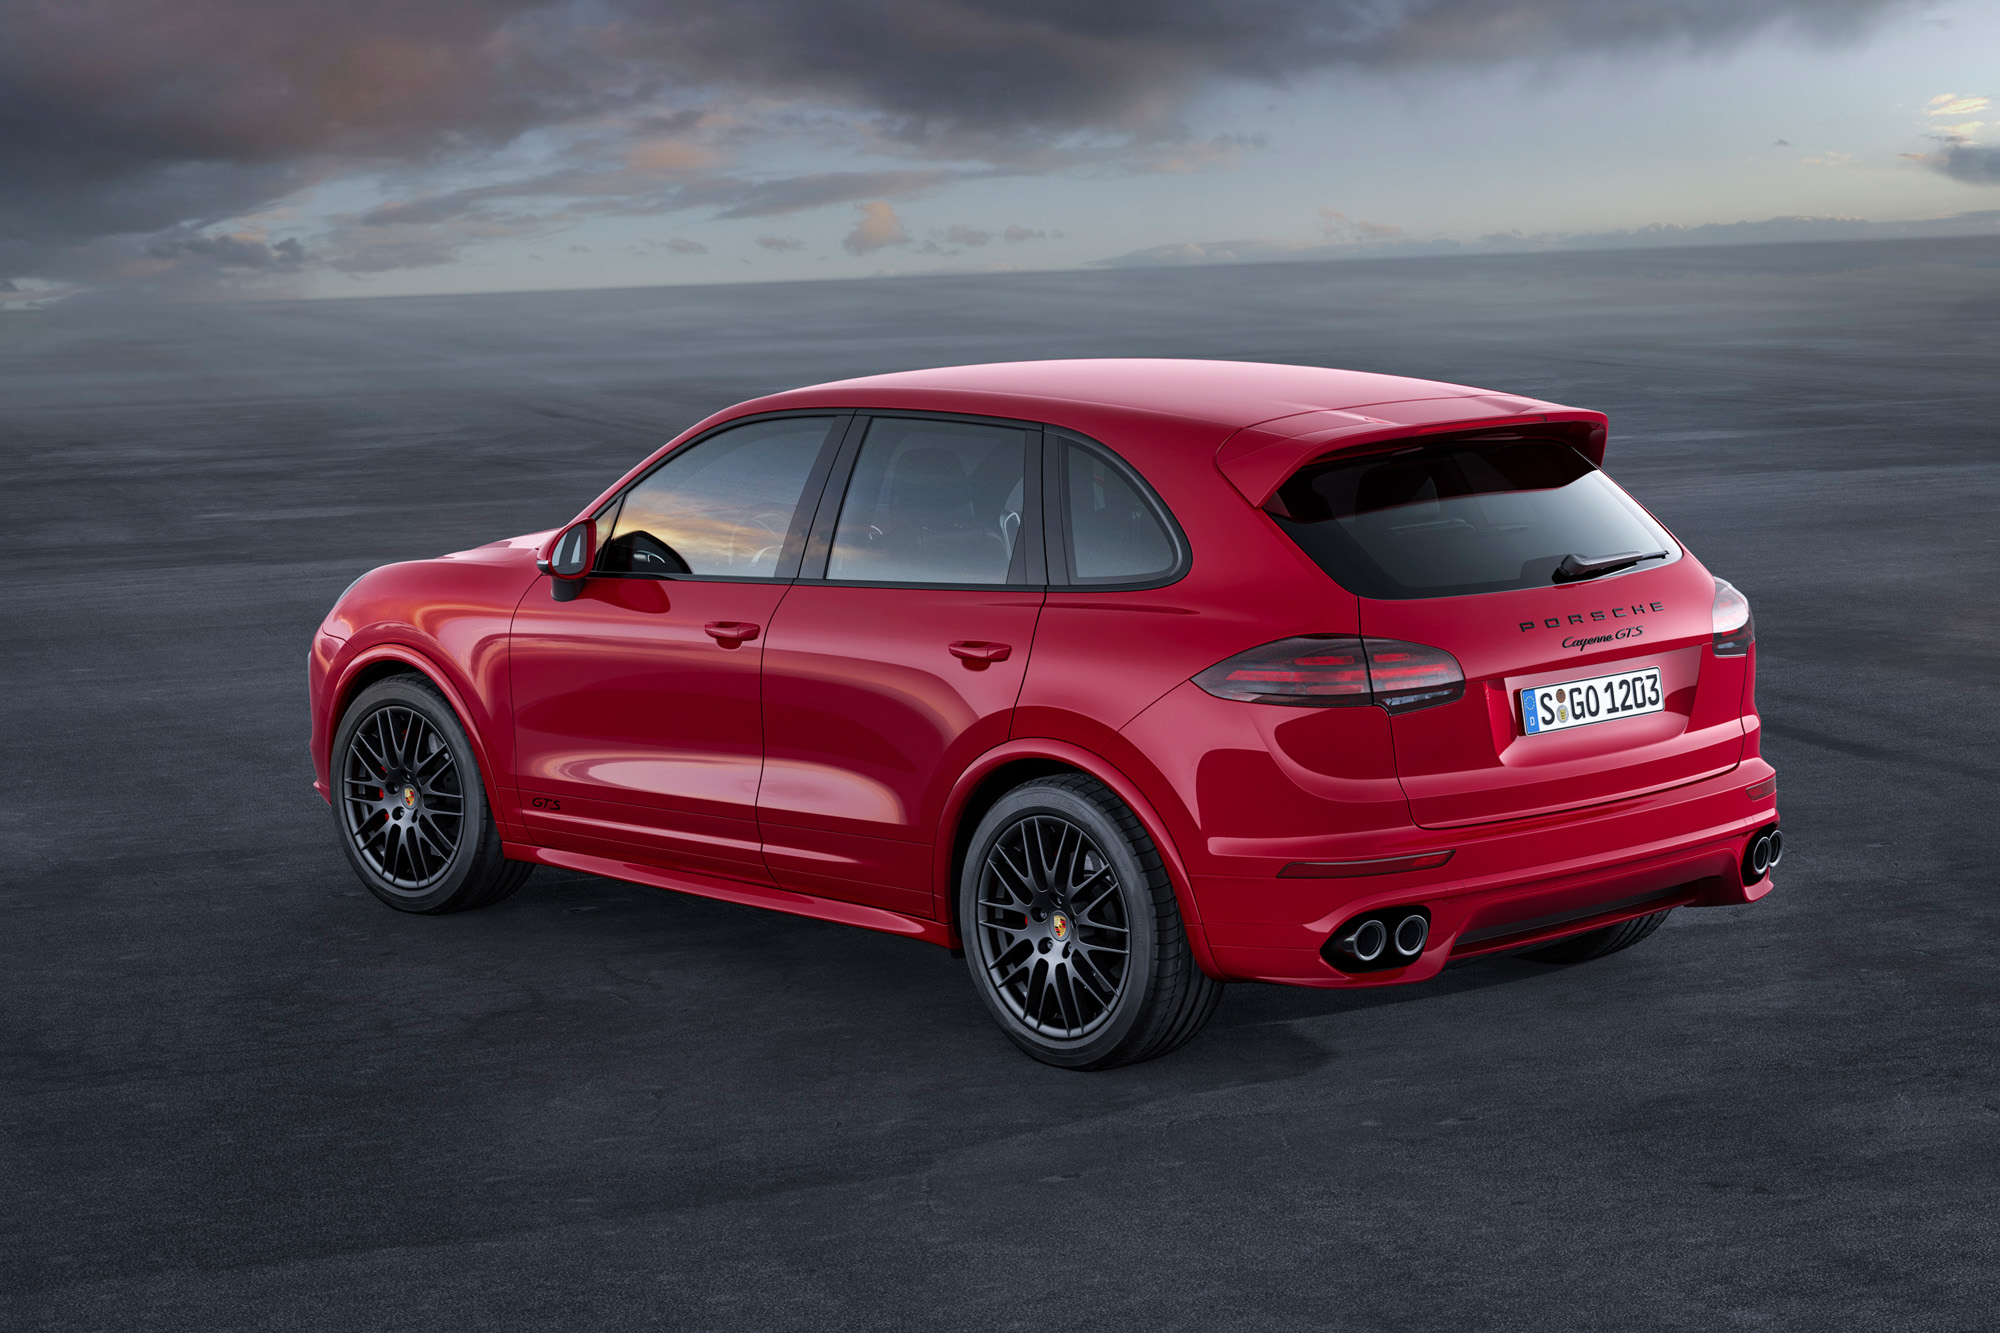 porsche cayenne ii gts facelift 440 ps mit pfiff. Black Bedroom Furniture Sets. Home Design Ideas